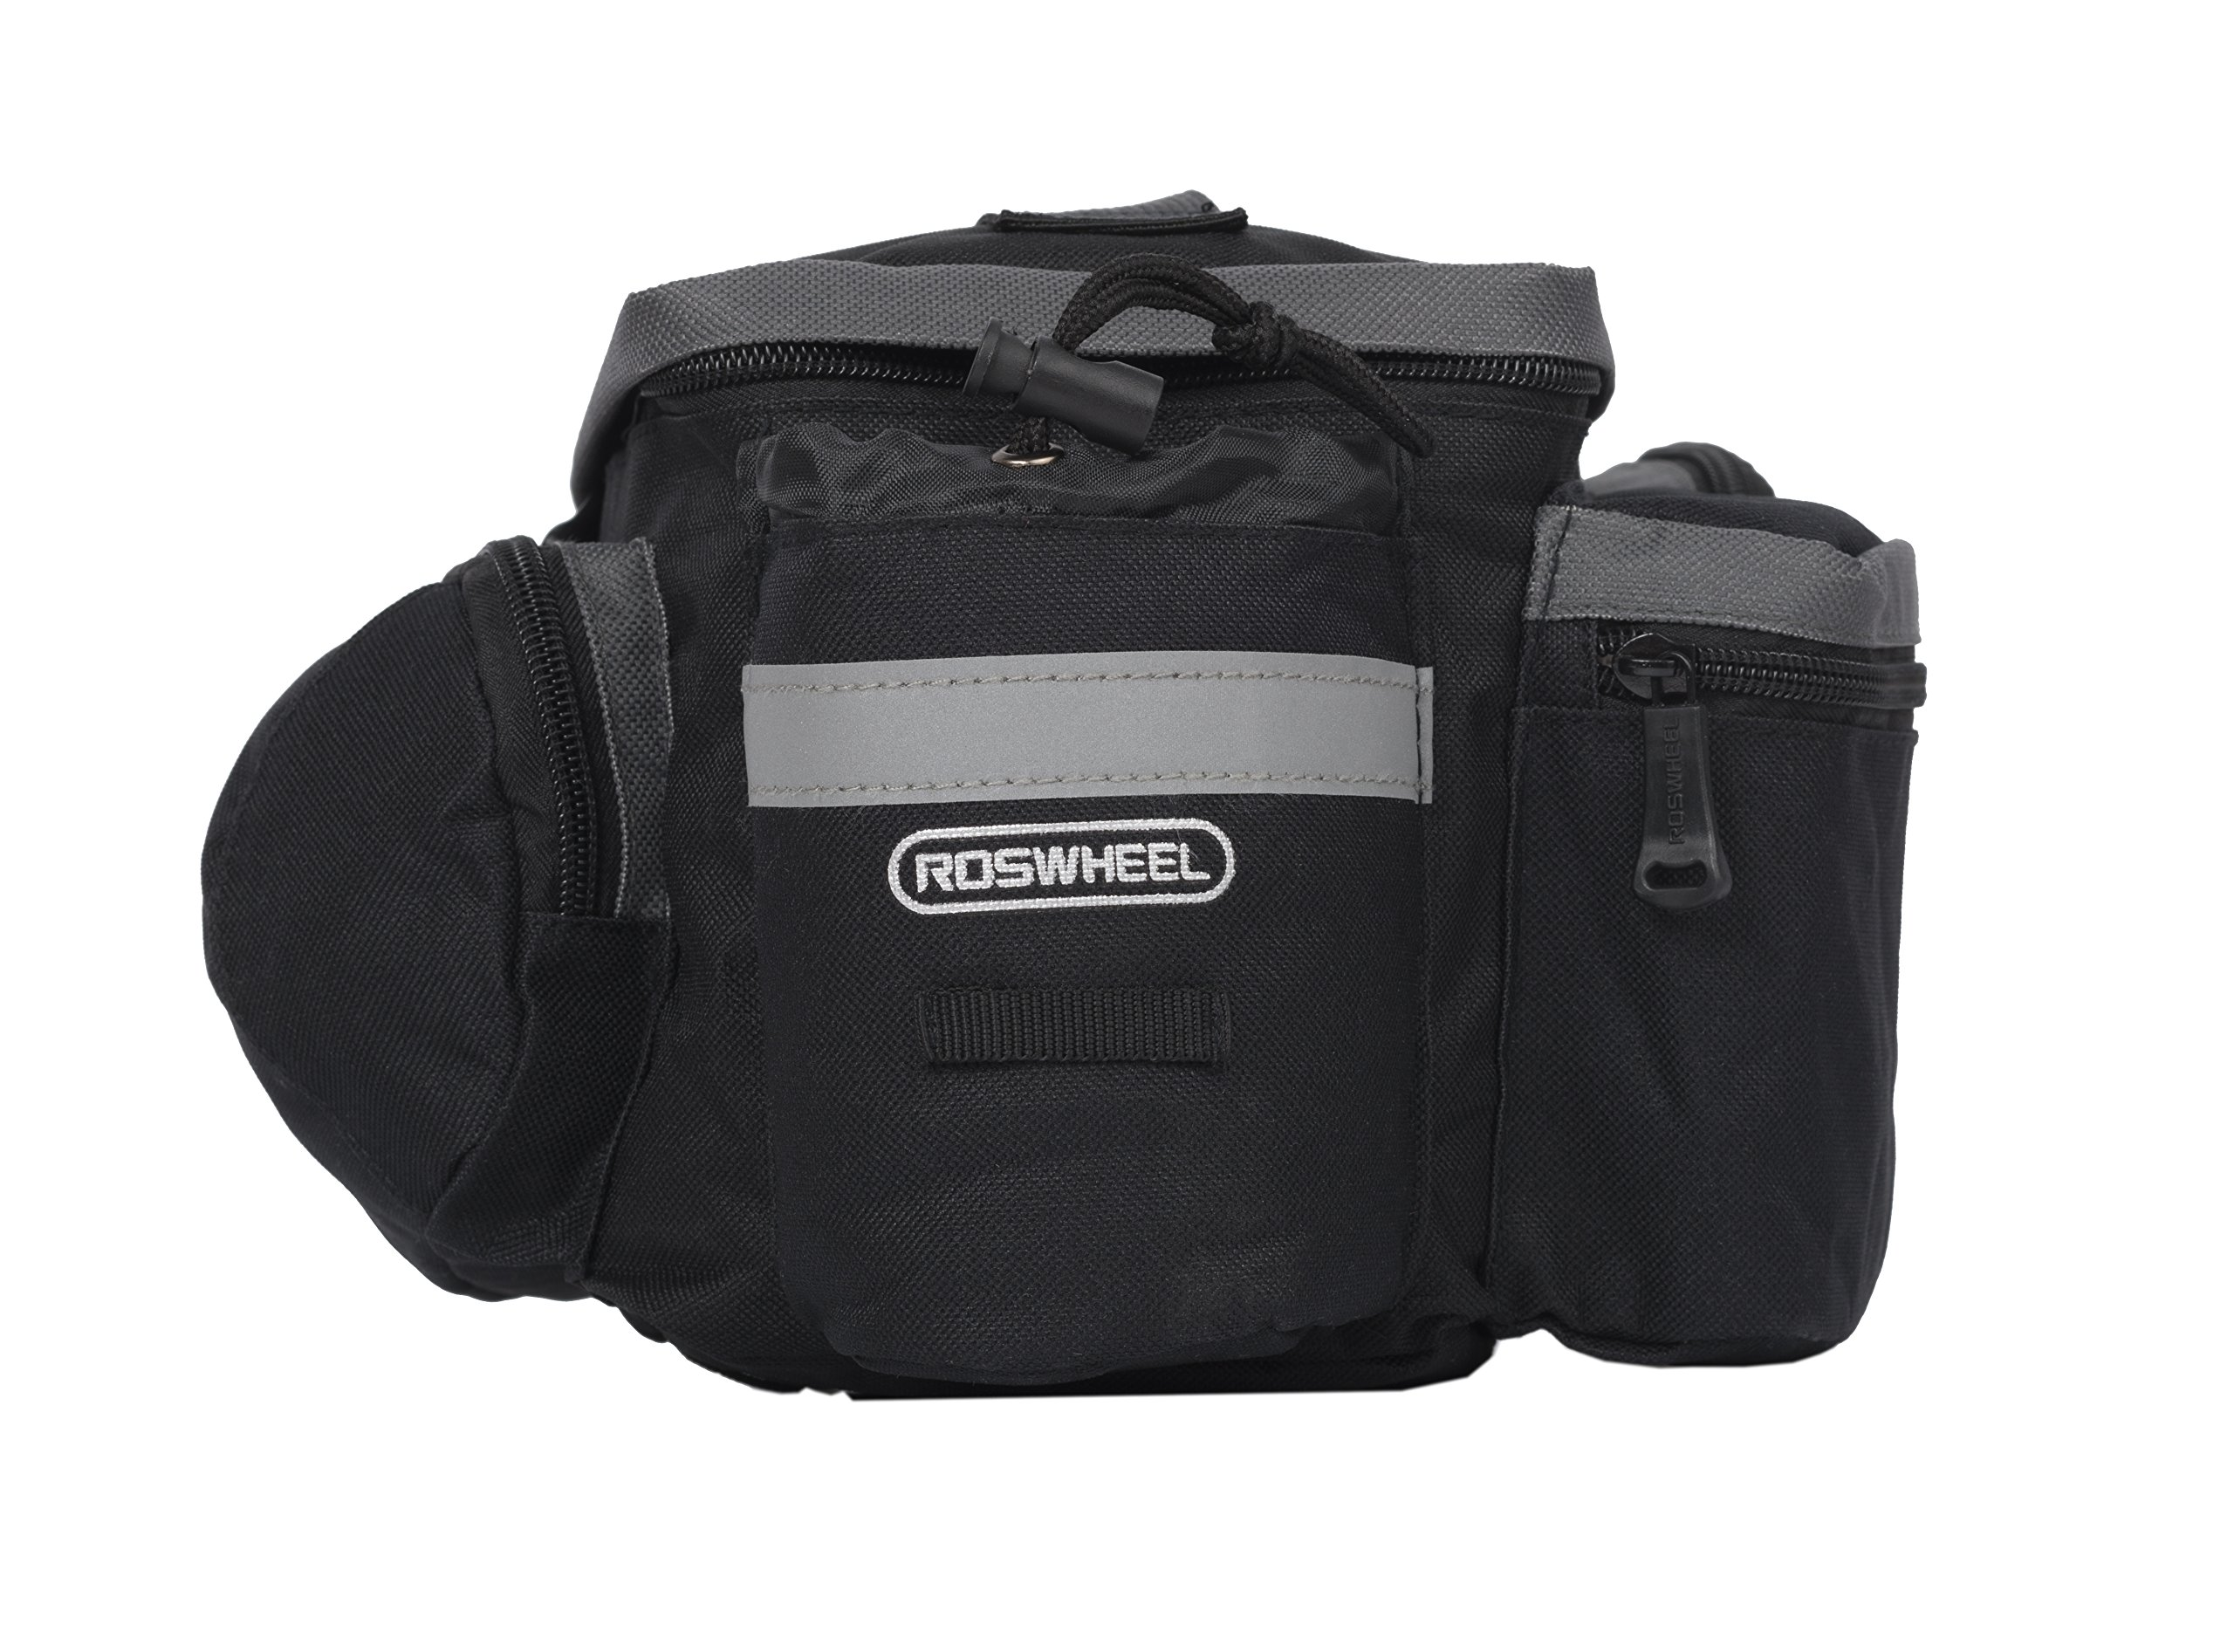 Roswheel 14024 Convertible Bike Bicycle Rear Rack Seat Pannier Trunk Bag with Cup Holder by Roswheel (Image #3)